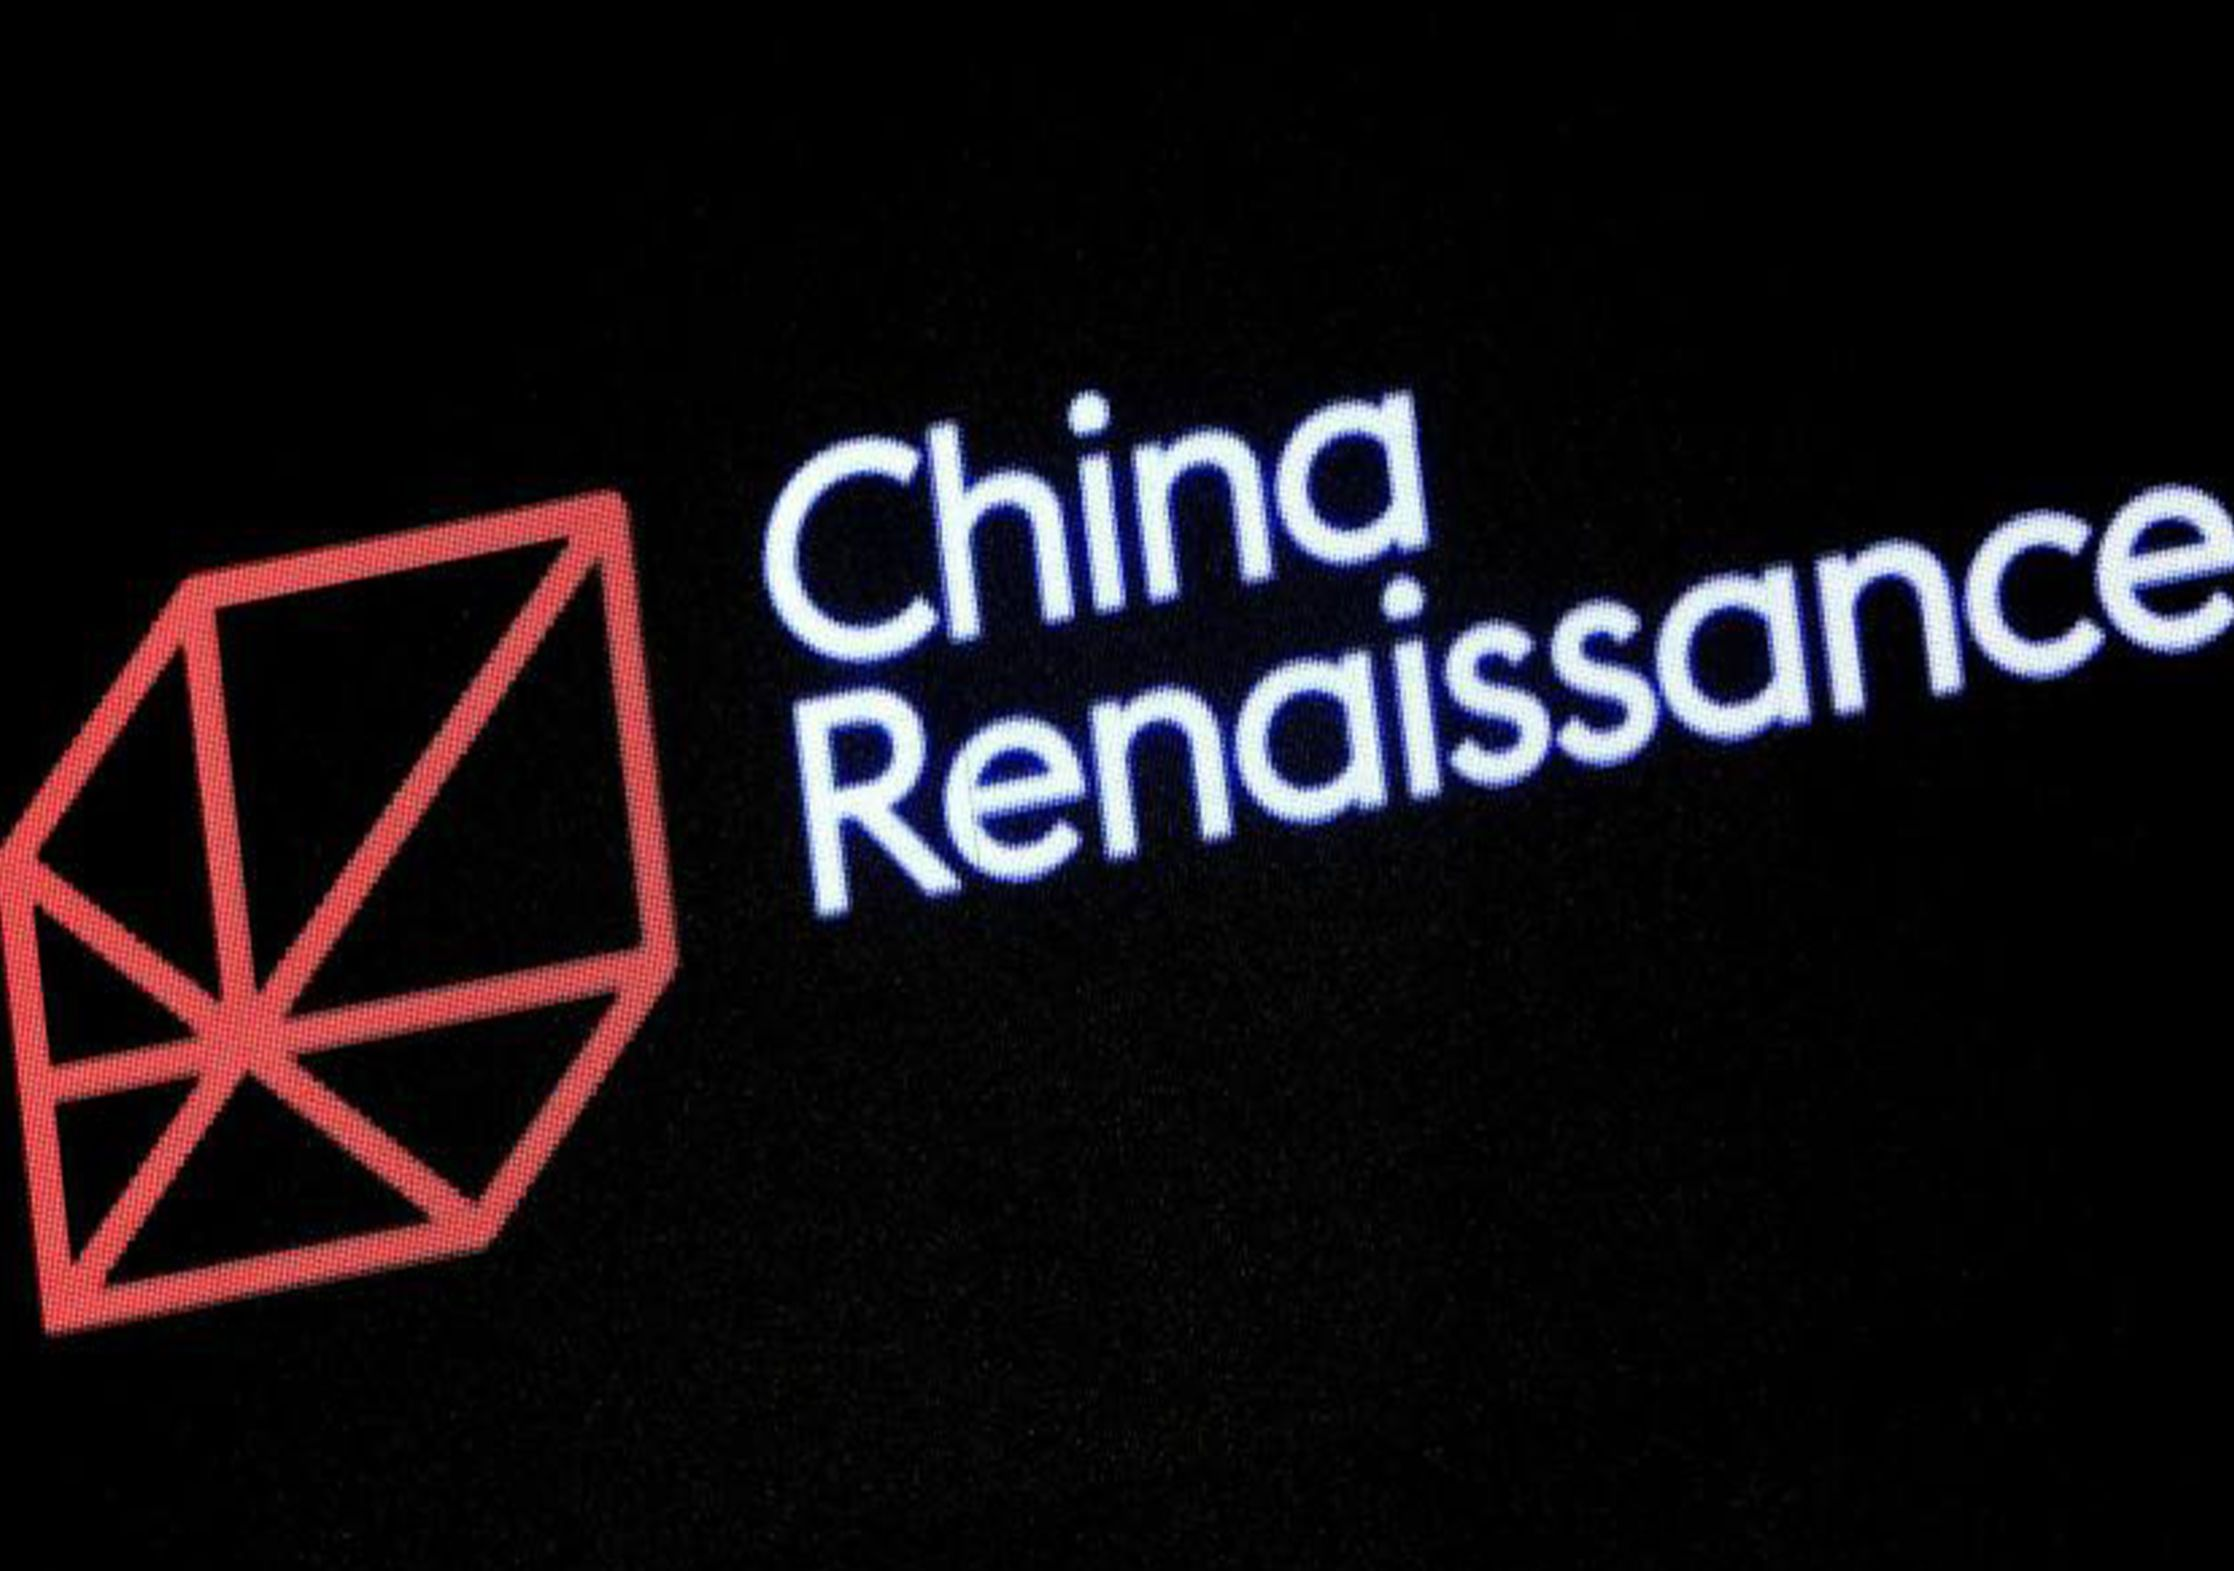 China Financial News, China News, China Renaisance